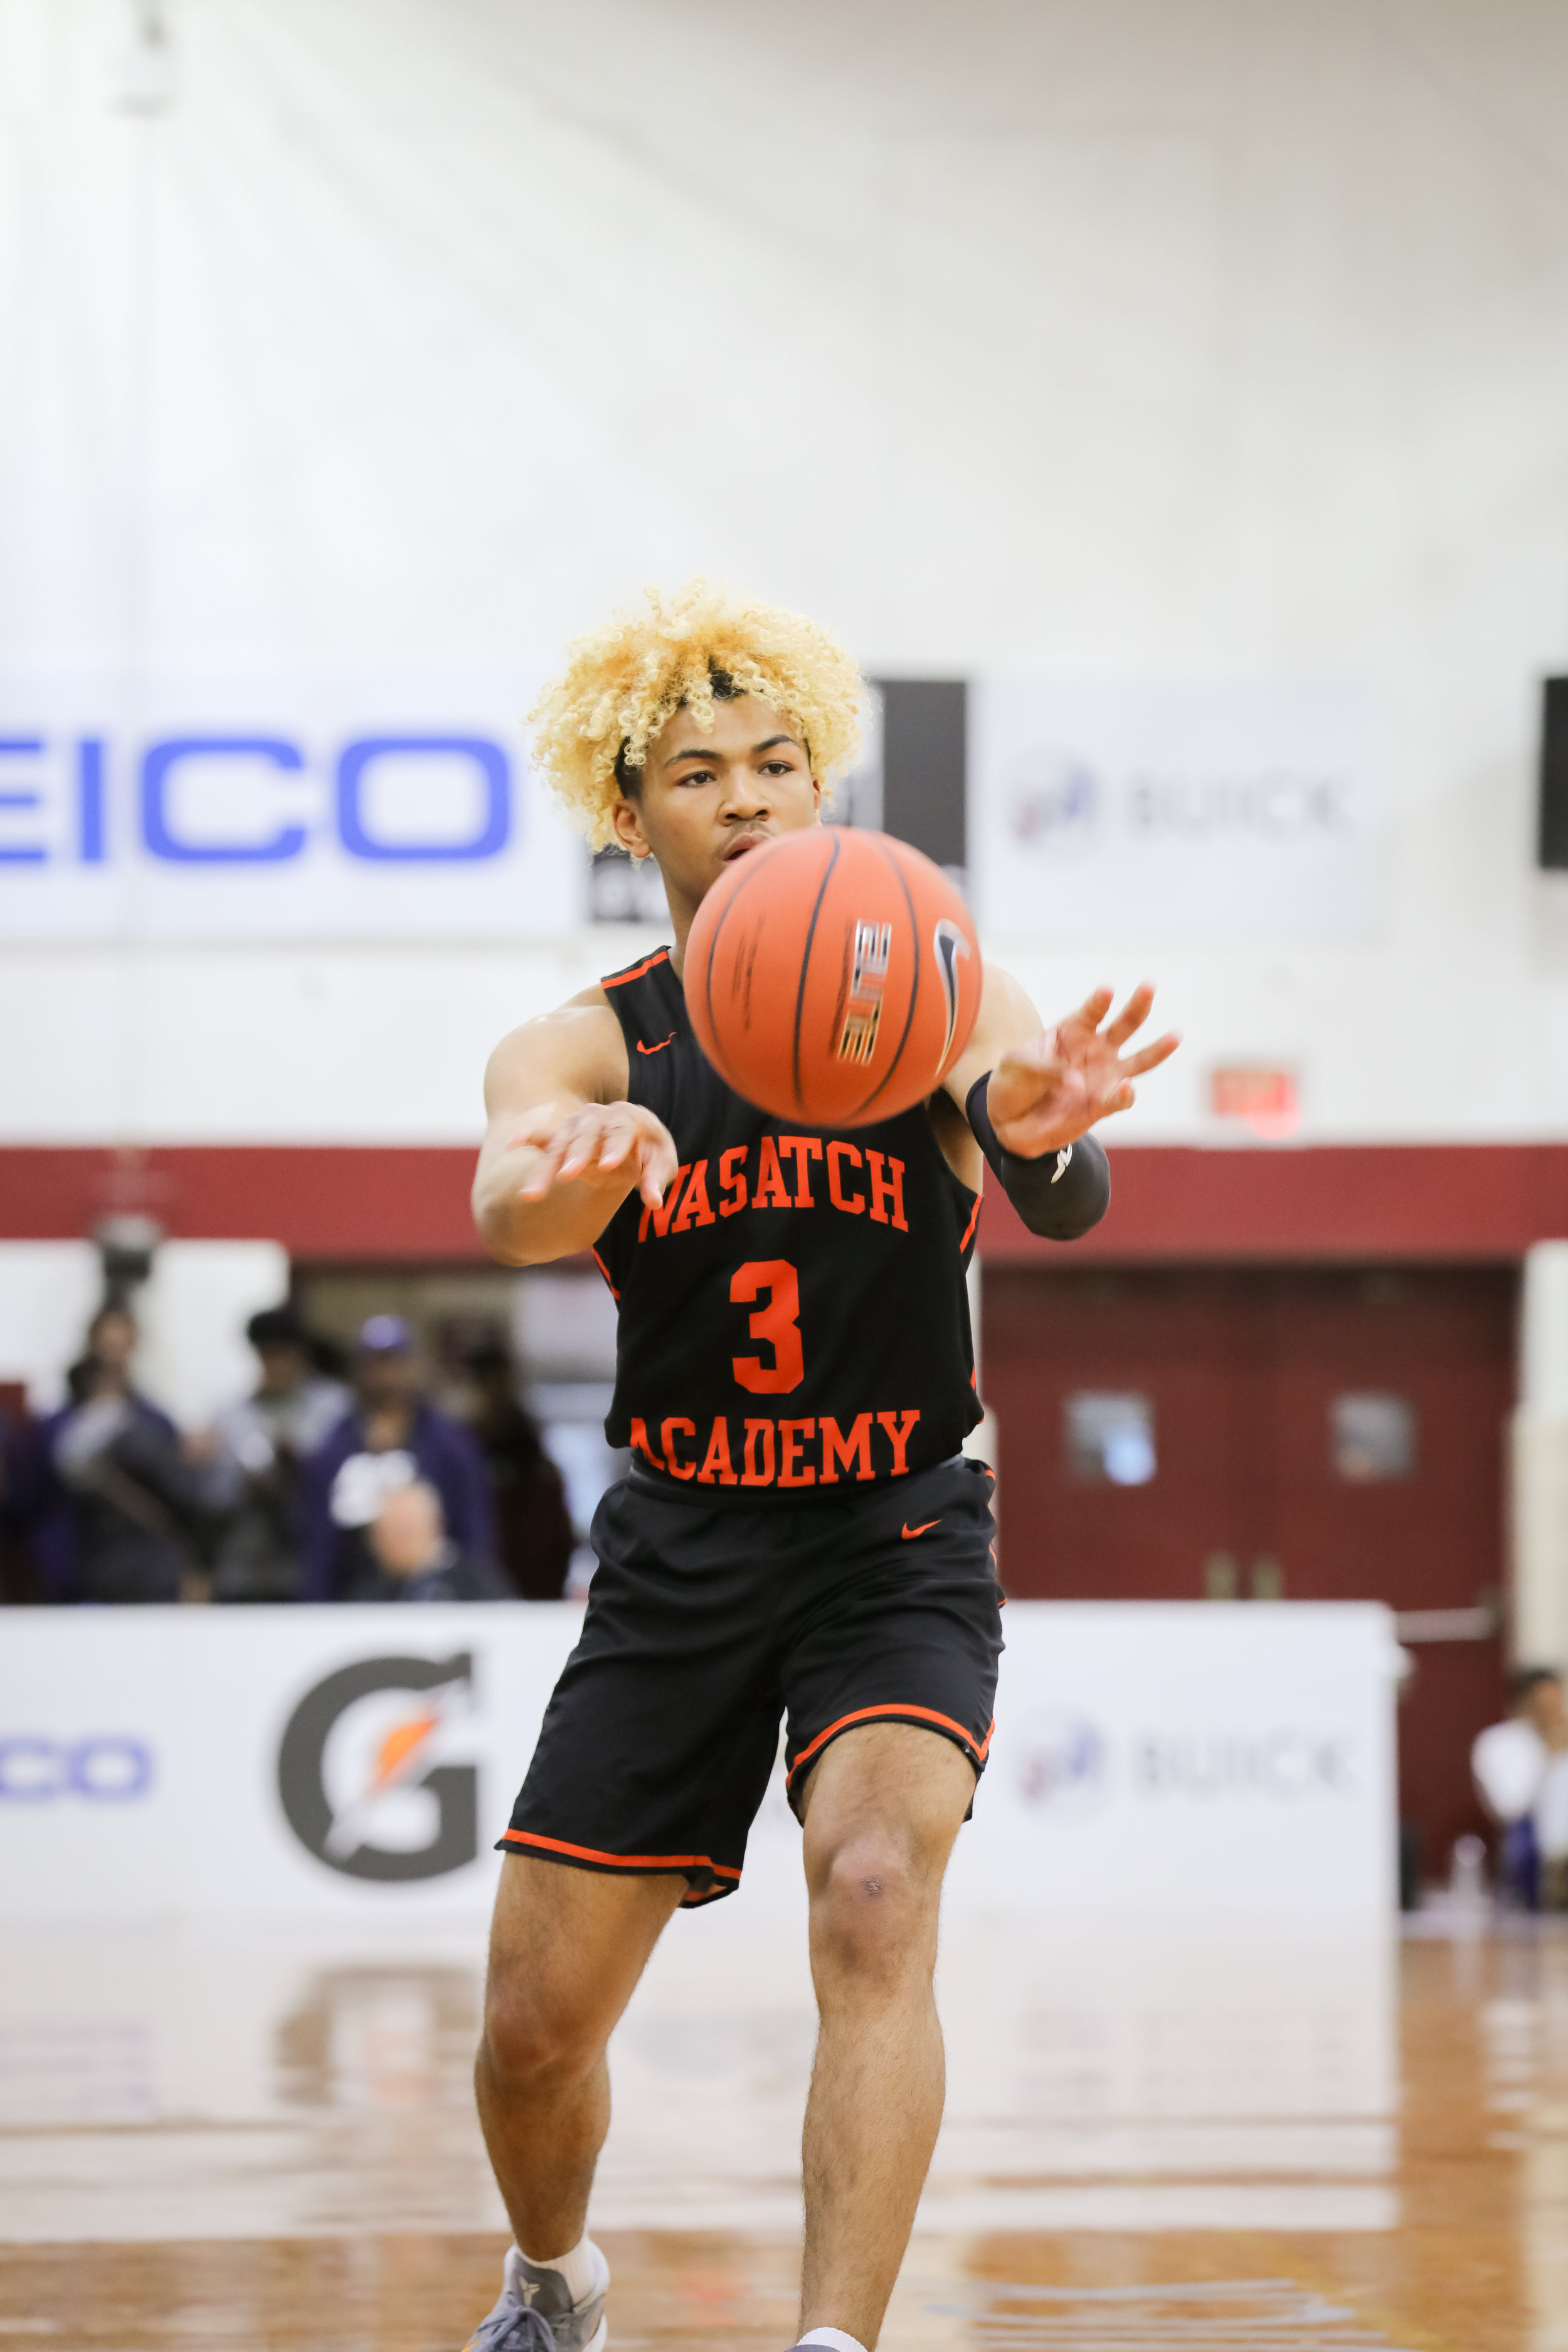 BBall_Geico_Nationals_2019 (25 of 59).jpg